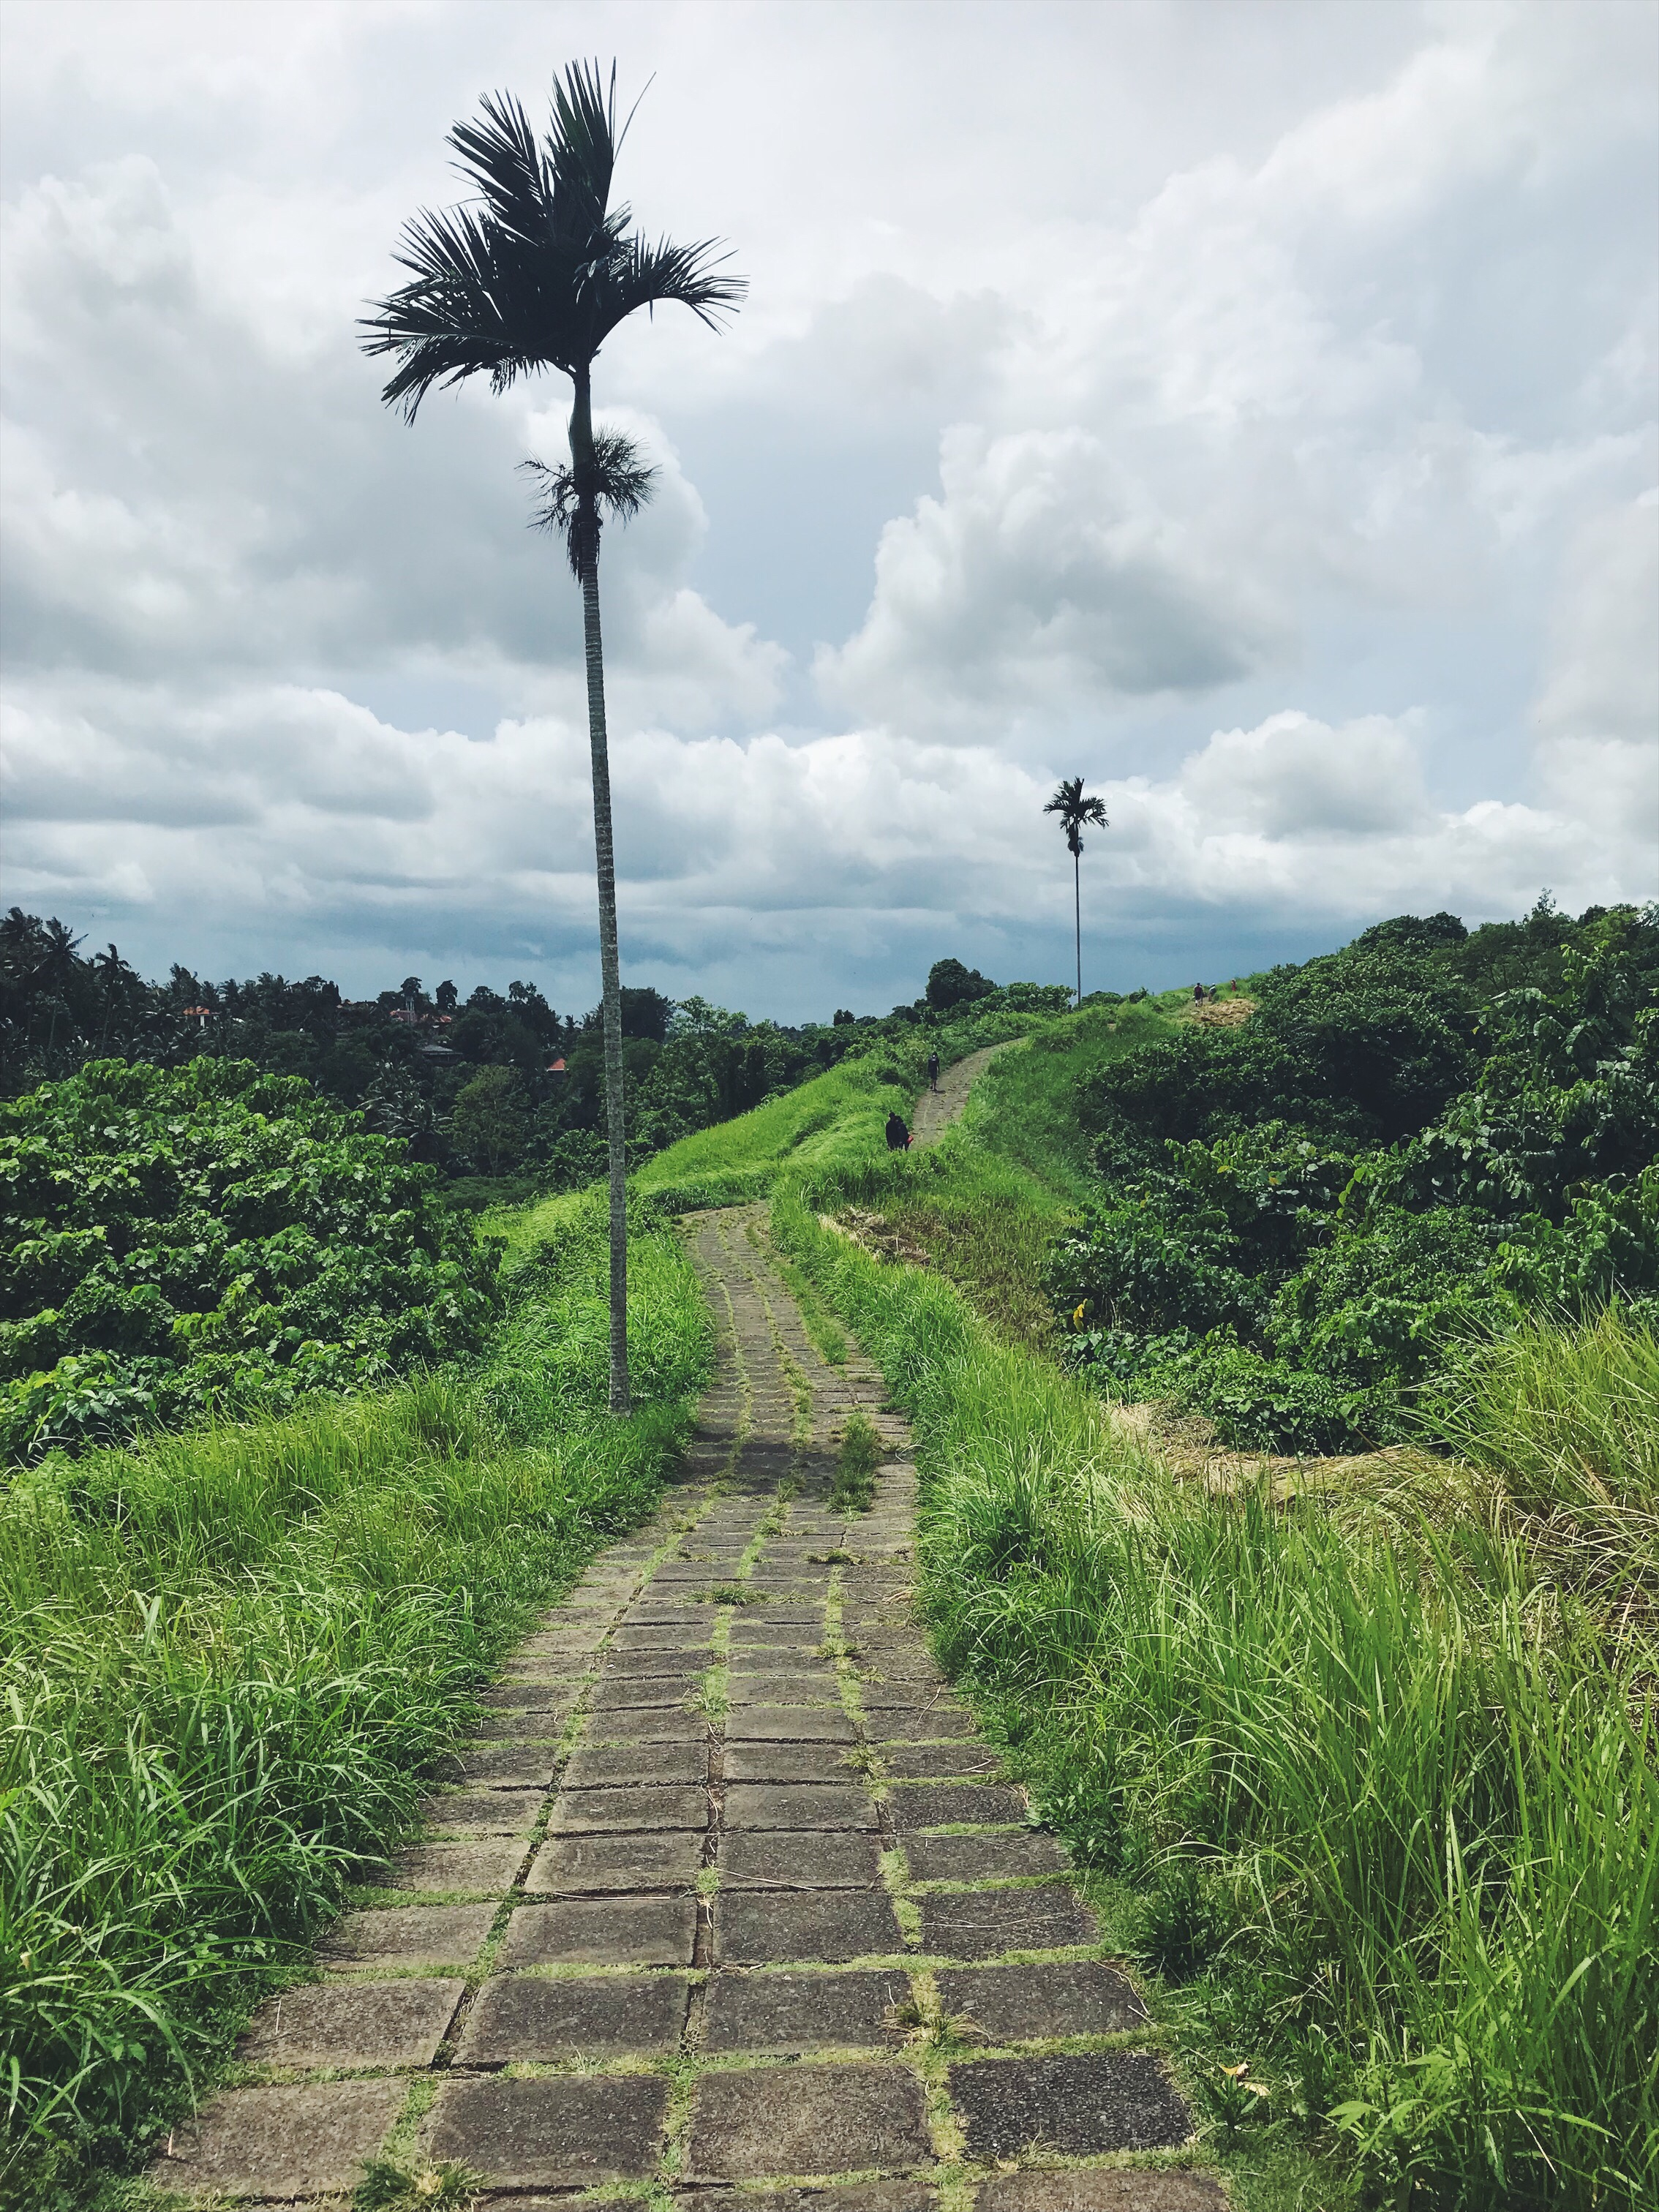 Take a walk in Bali – Campuhan ridge walk.